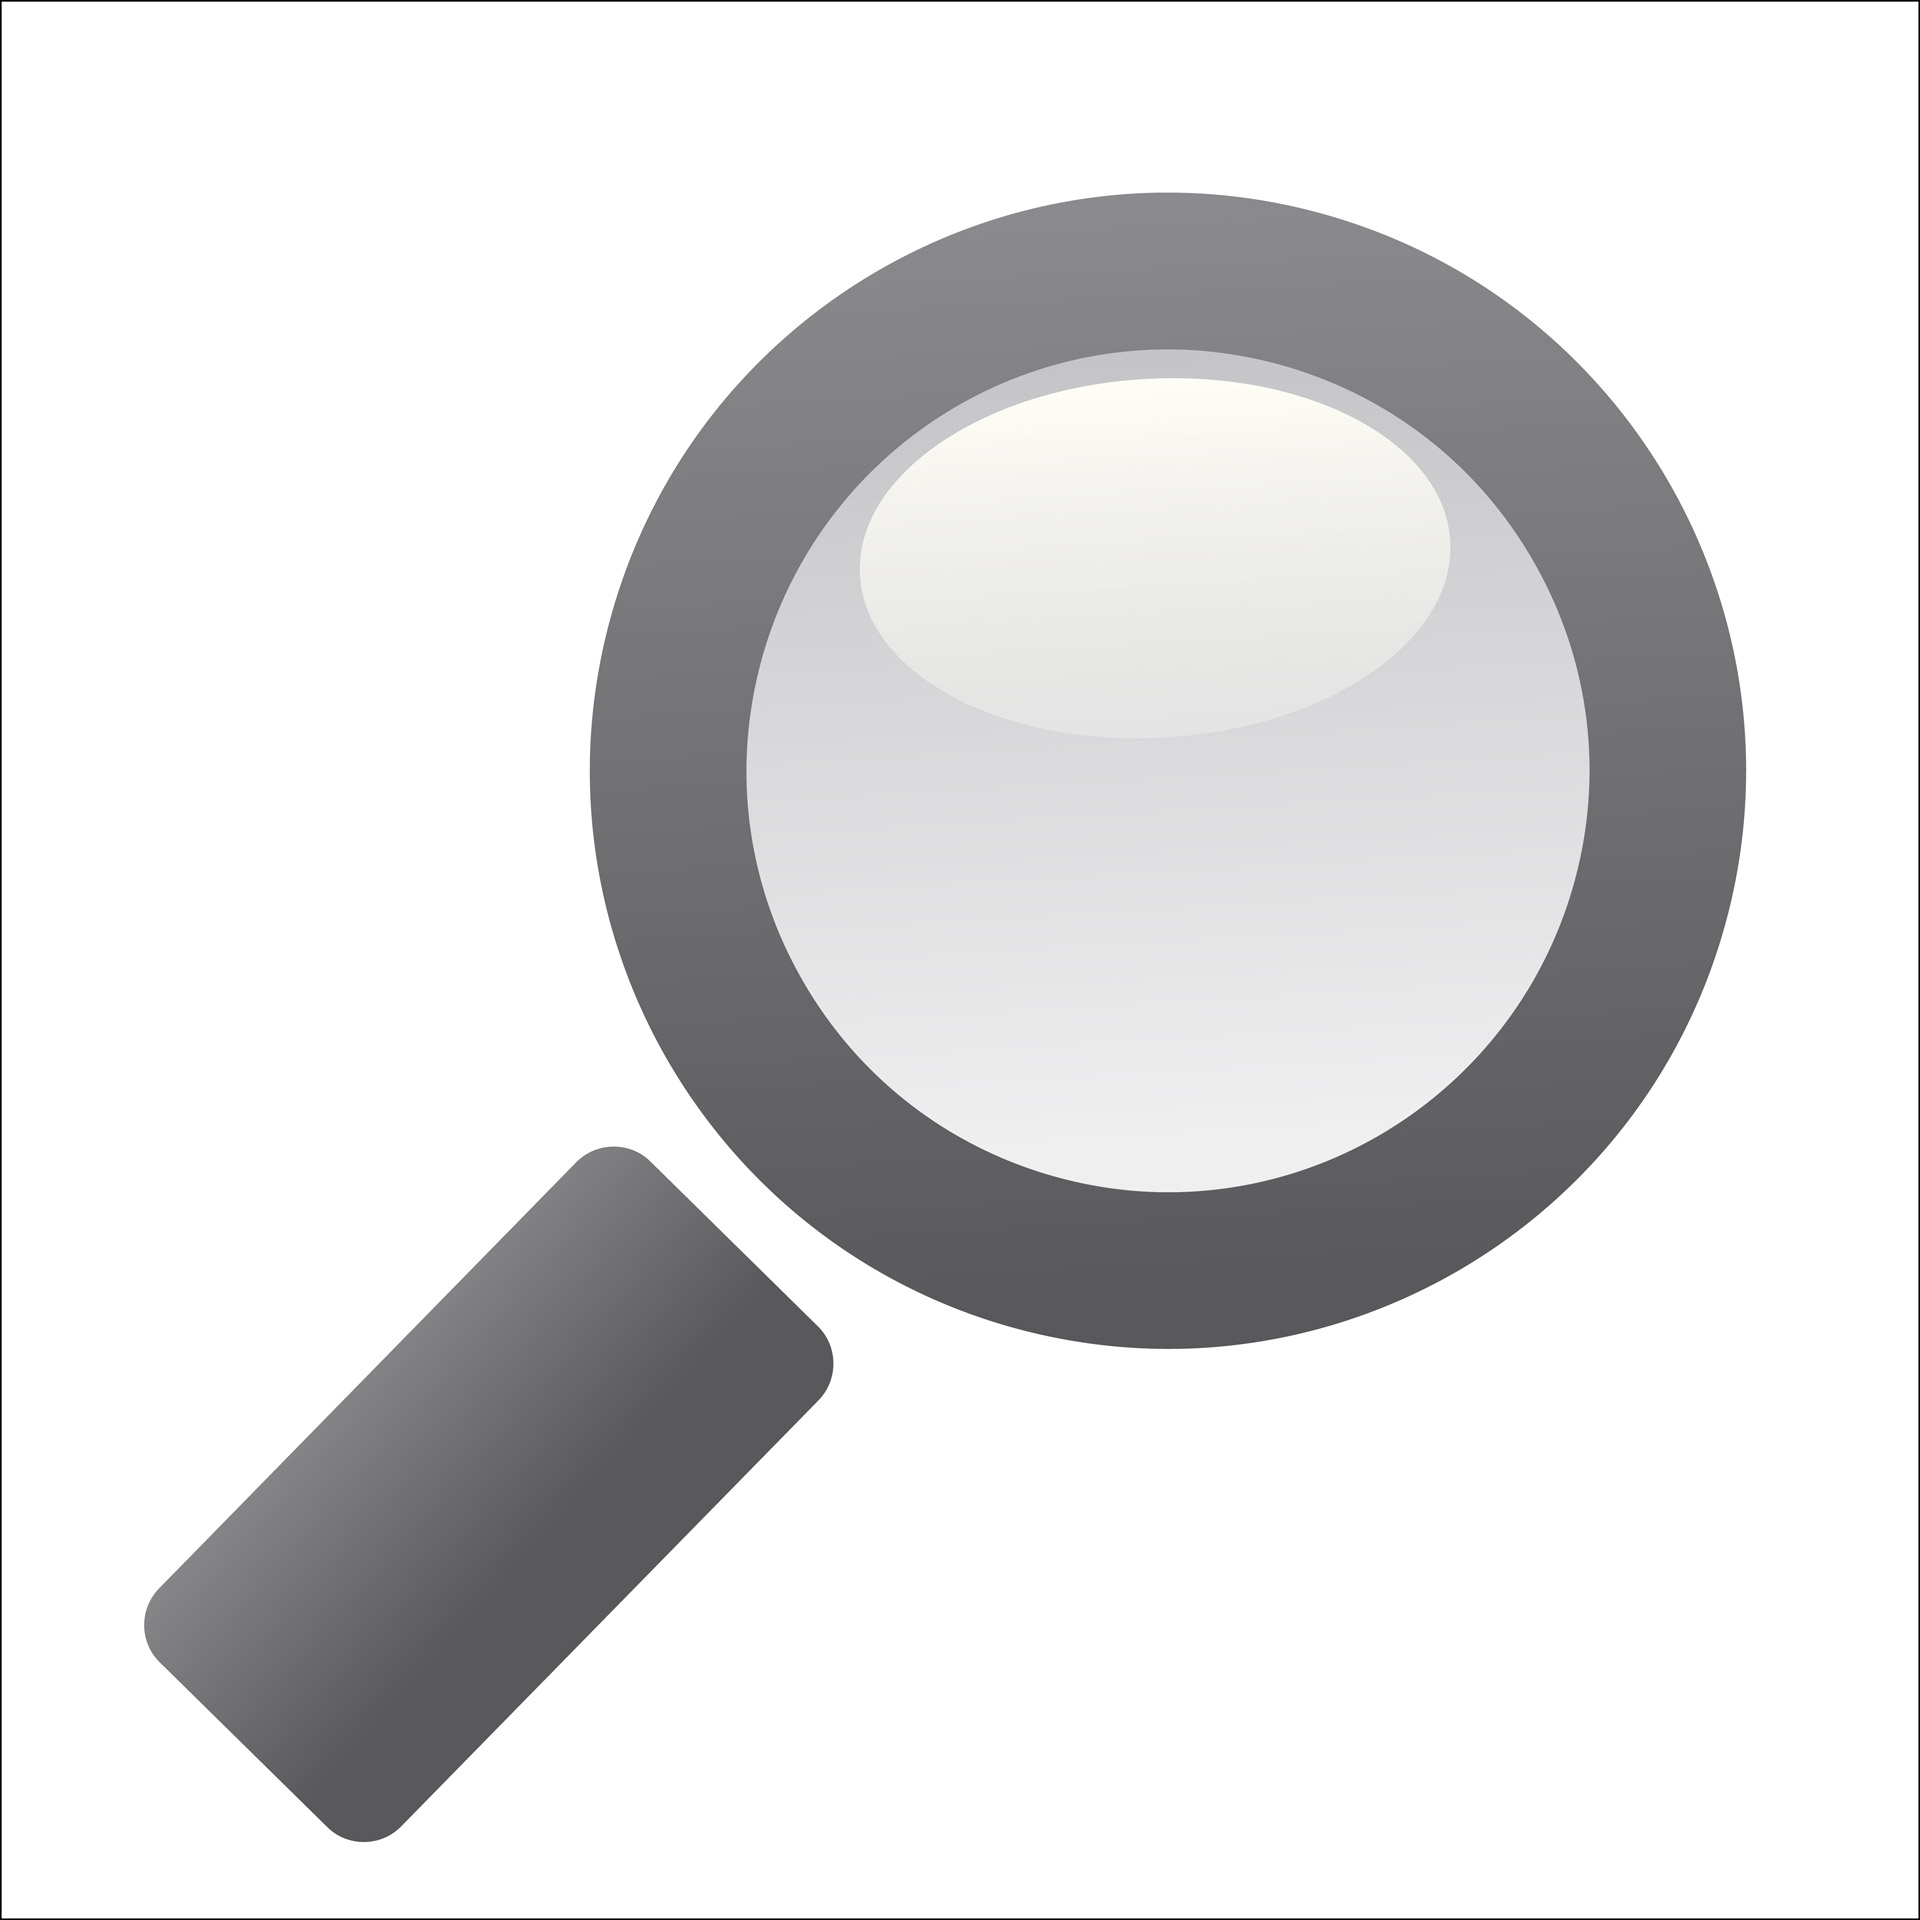 Magnifying free stock photo. Glass clipart